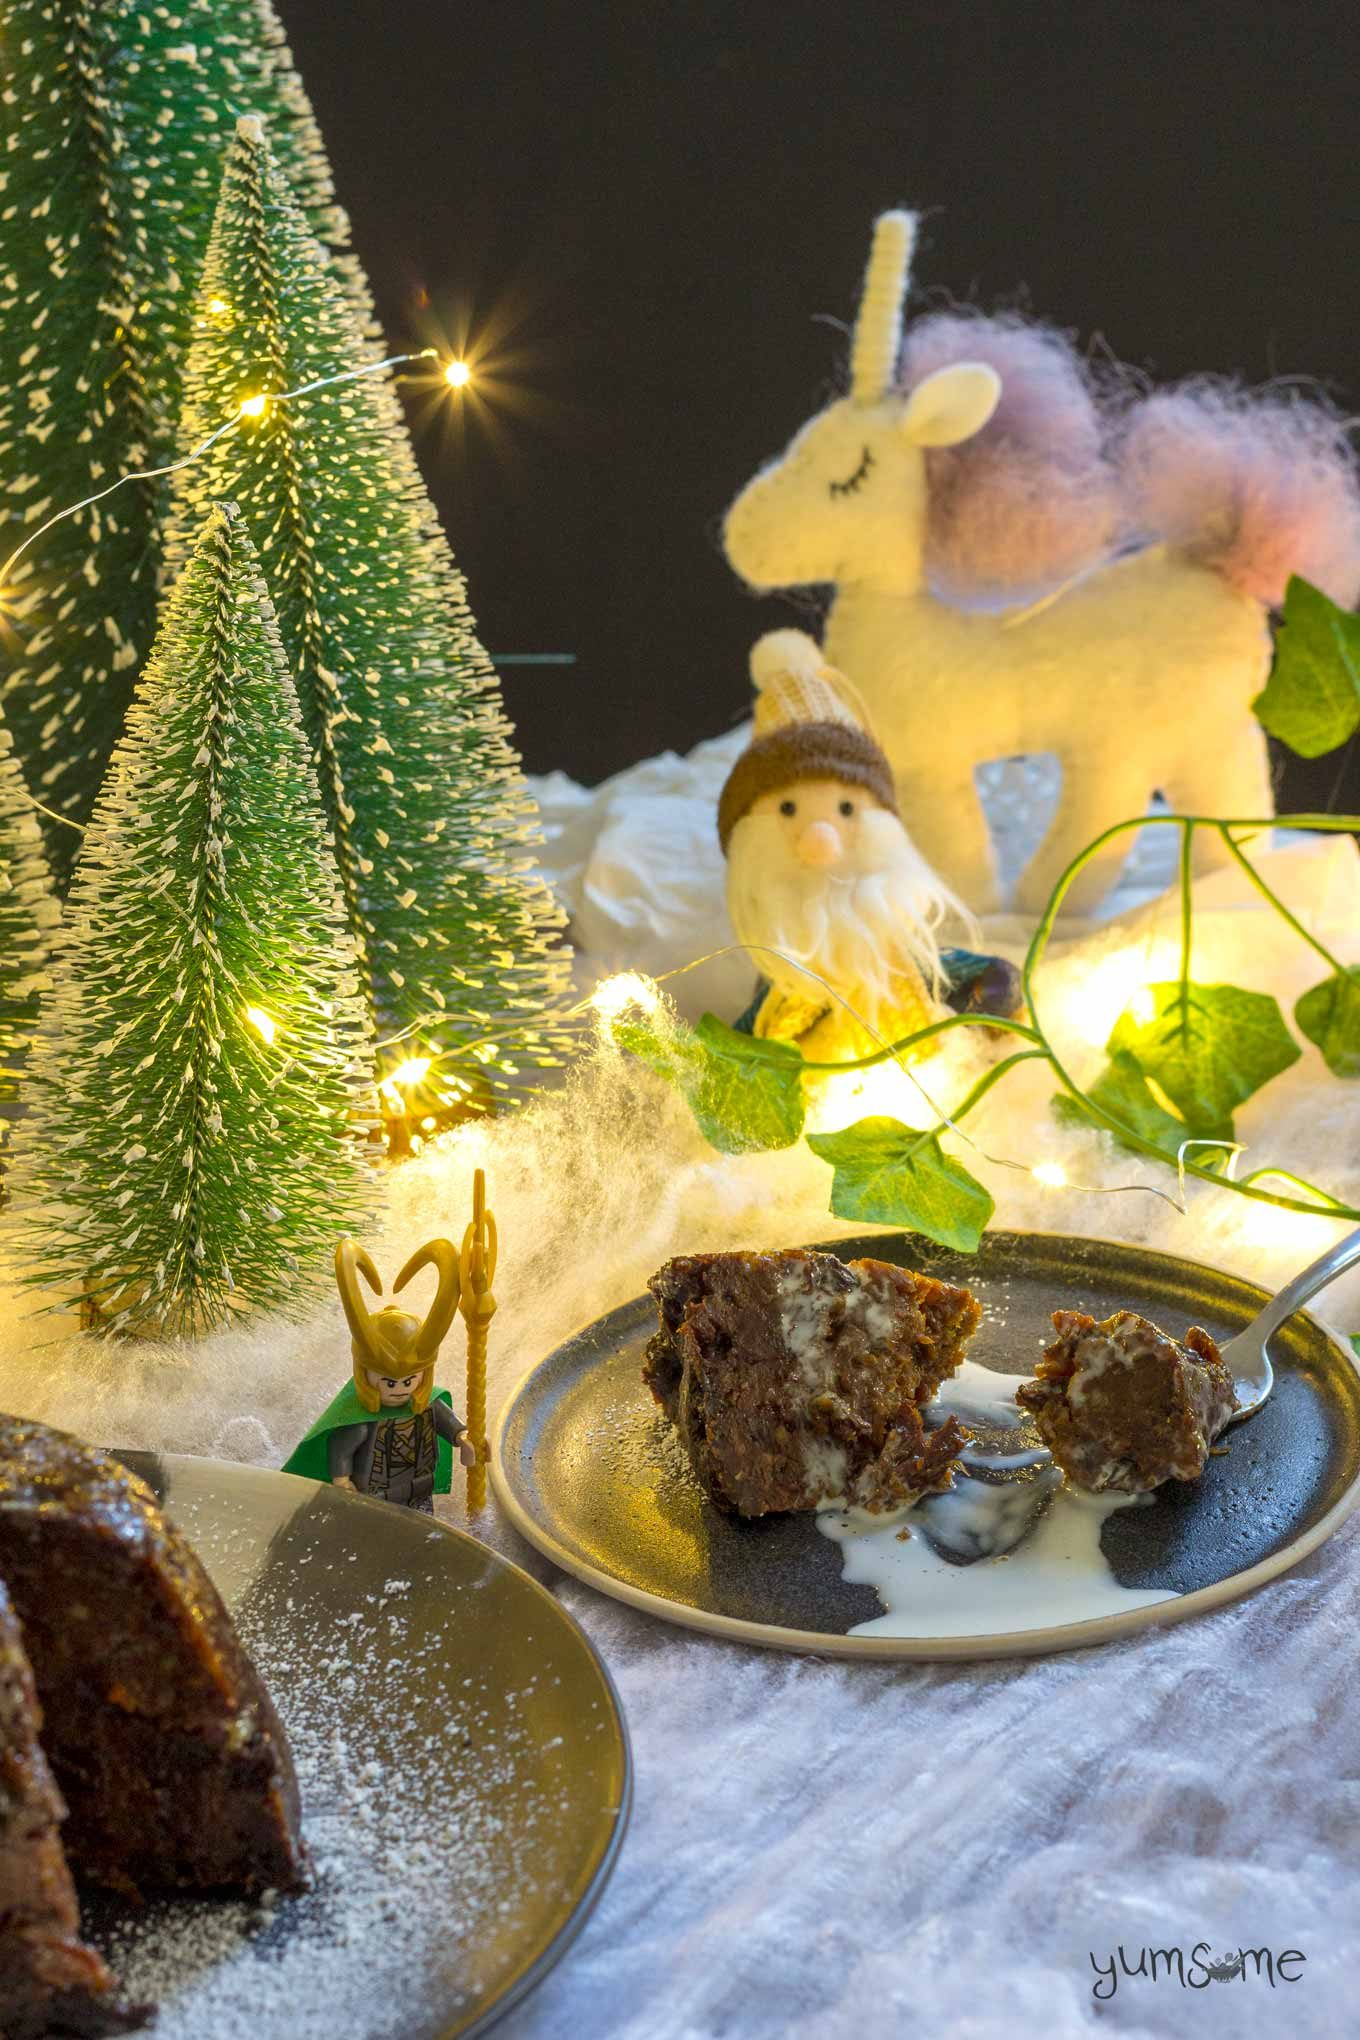 Vegan Christmas pudding on a black plate, with cream drizzled over it.